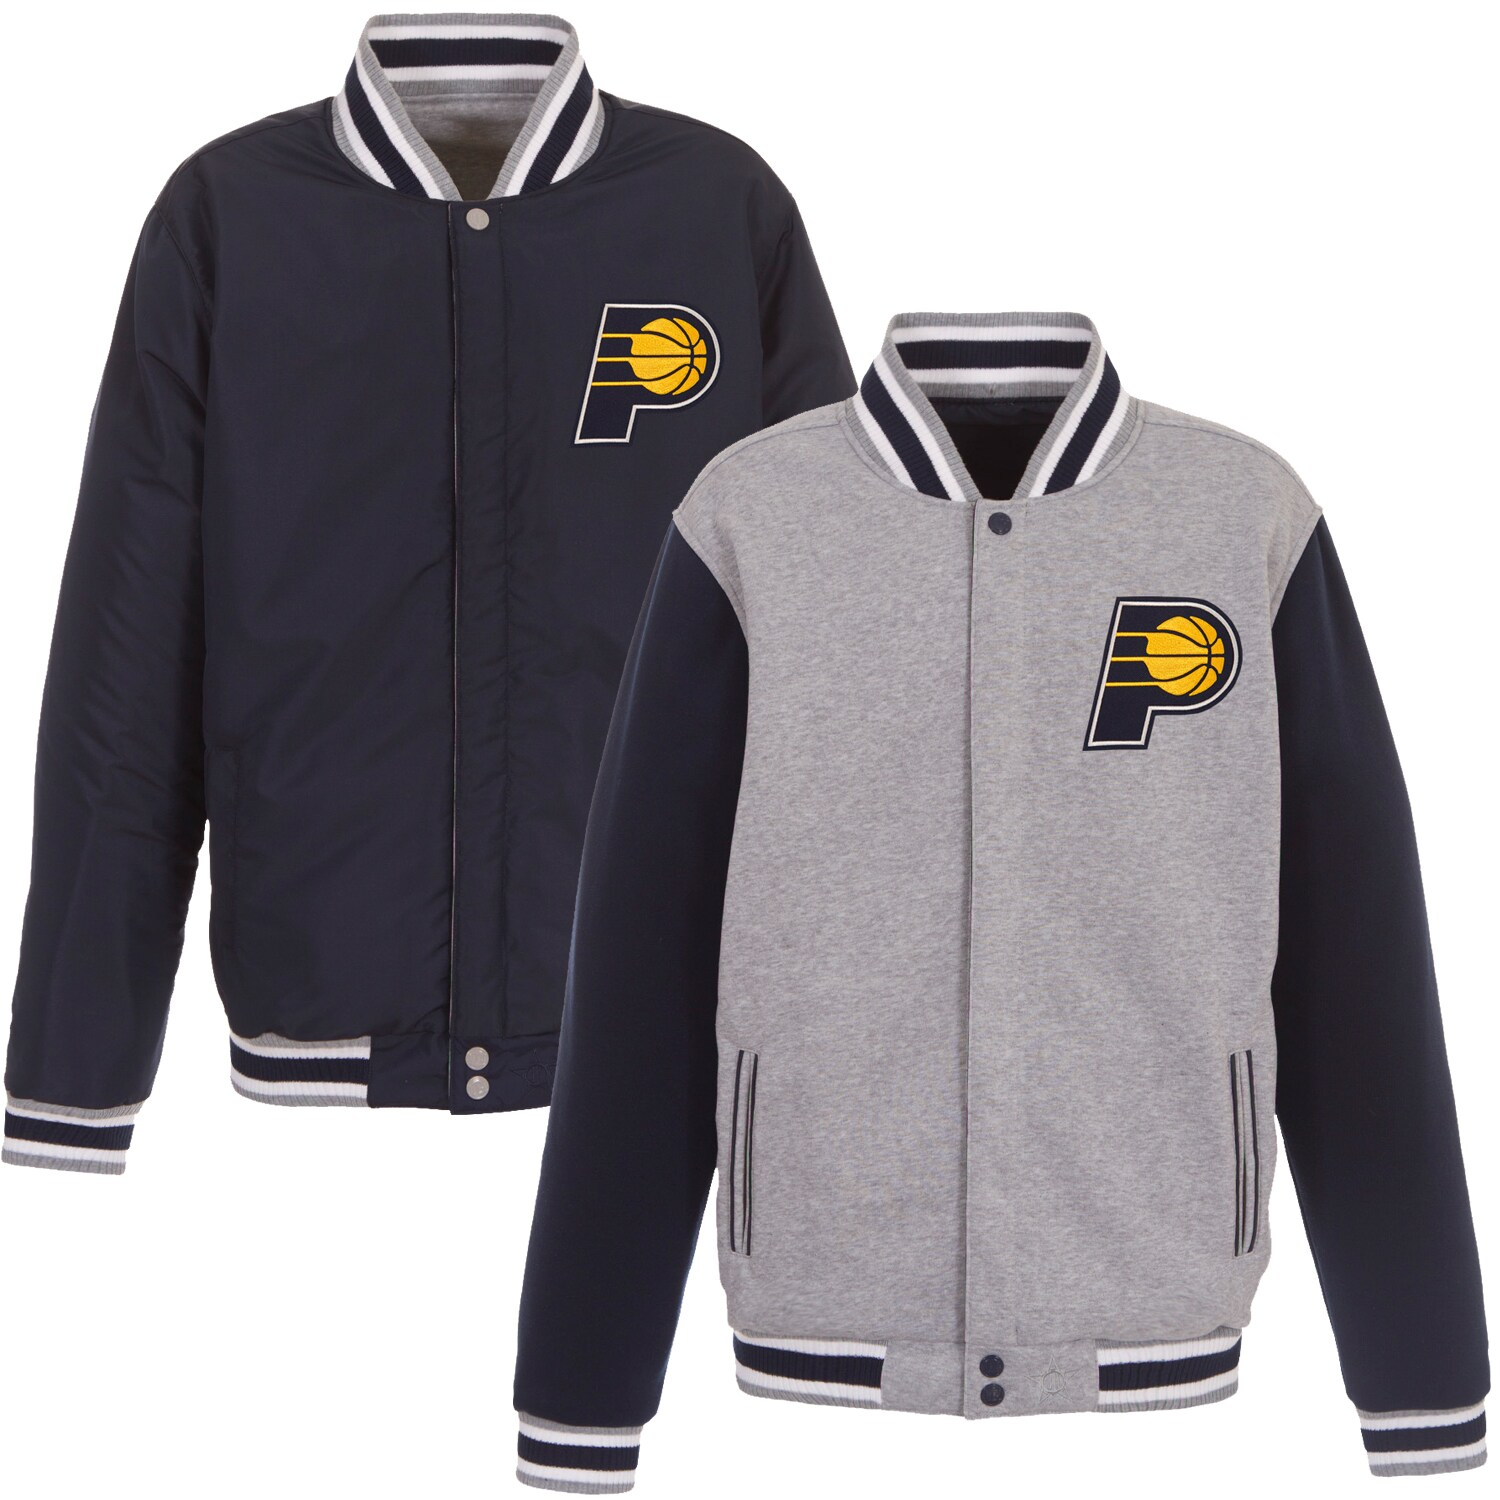 Indiana Pacers JH Design Embroidered Logo Reversible Fleece Full-Snap Jacket - Gray/Navy